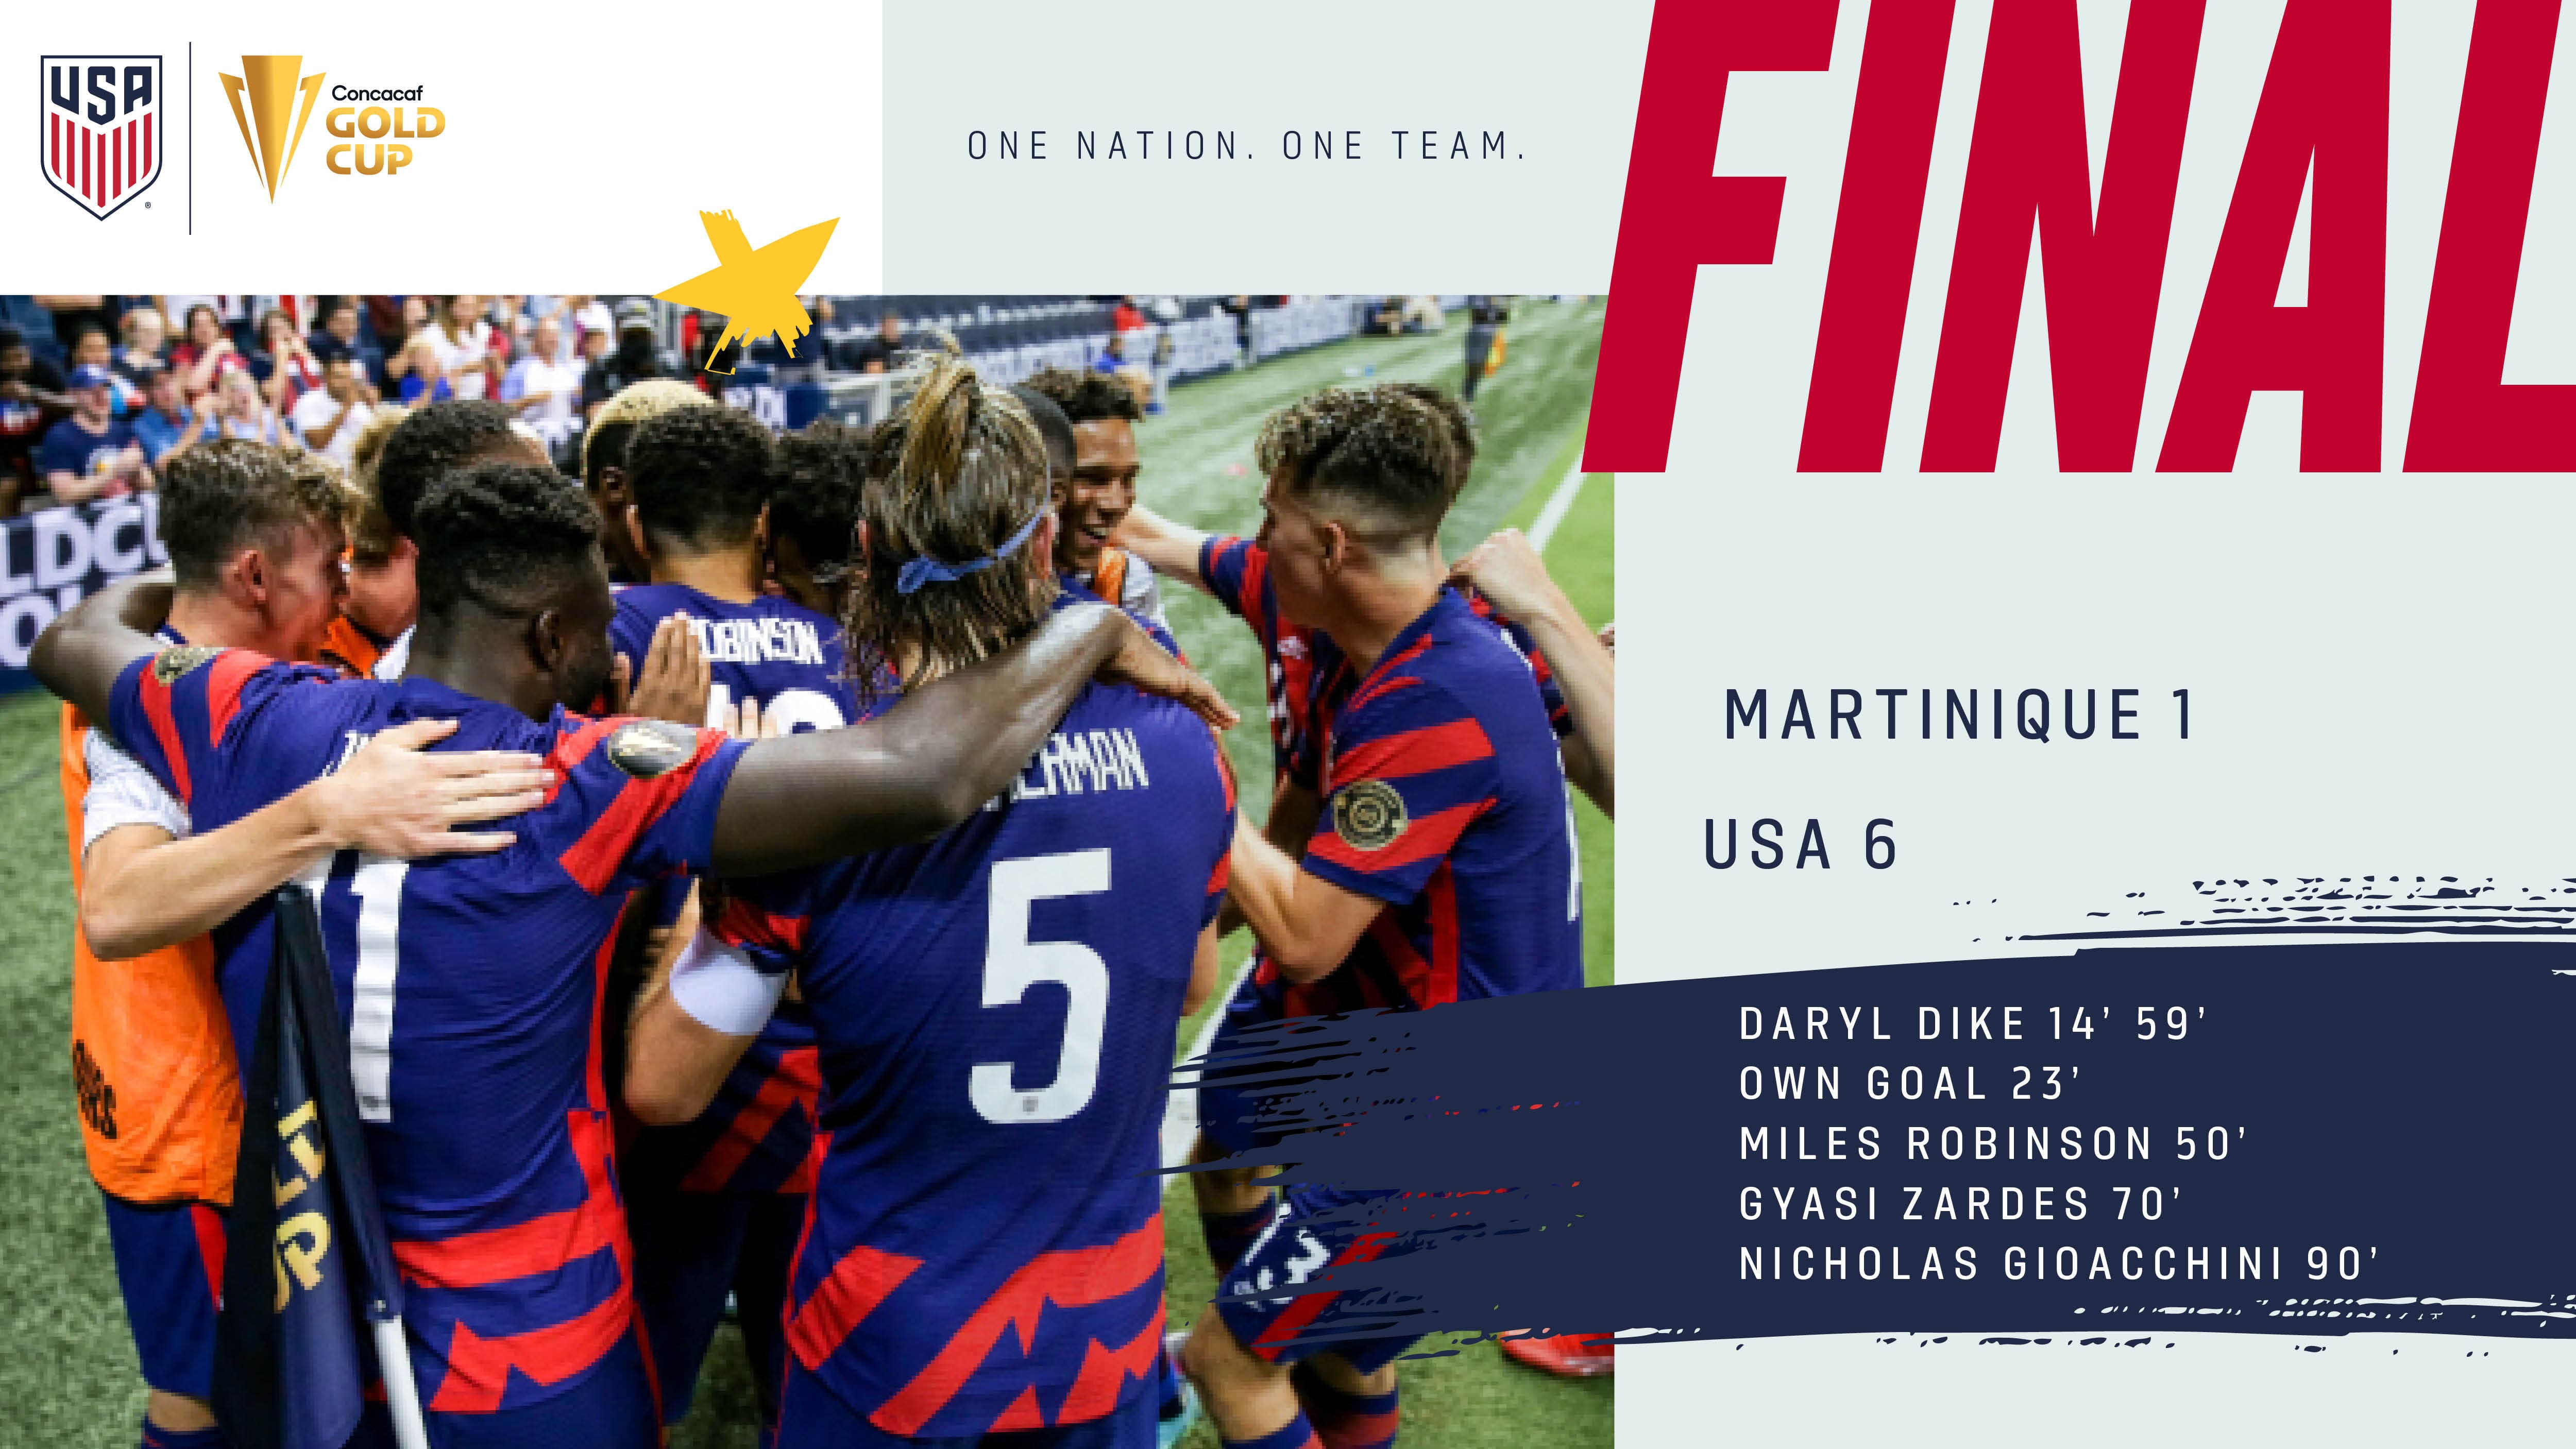 2021 Concacaf Gold Cup: USA 6 - Martinique 1   Match Report, Stats & Group Standings